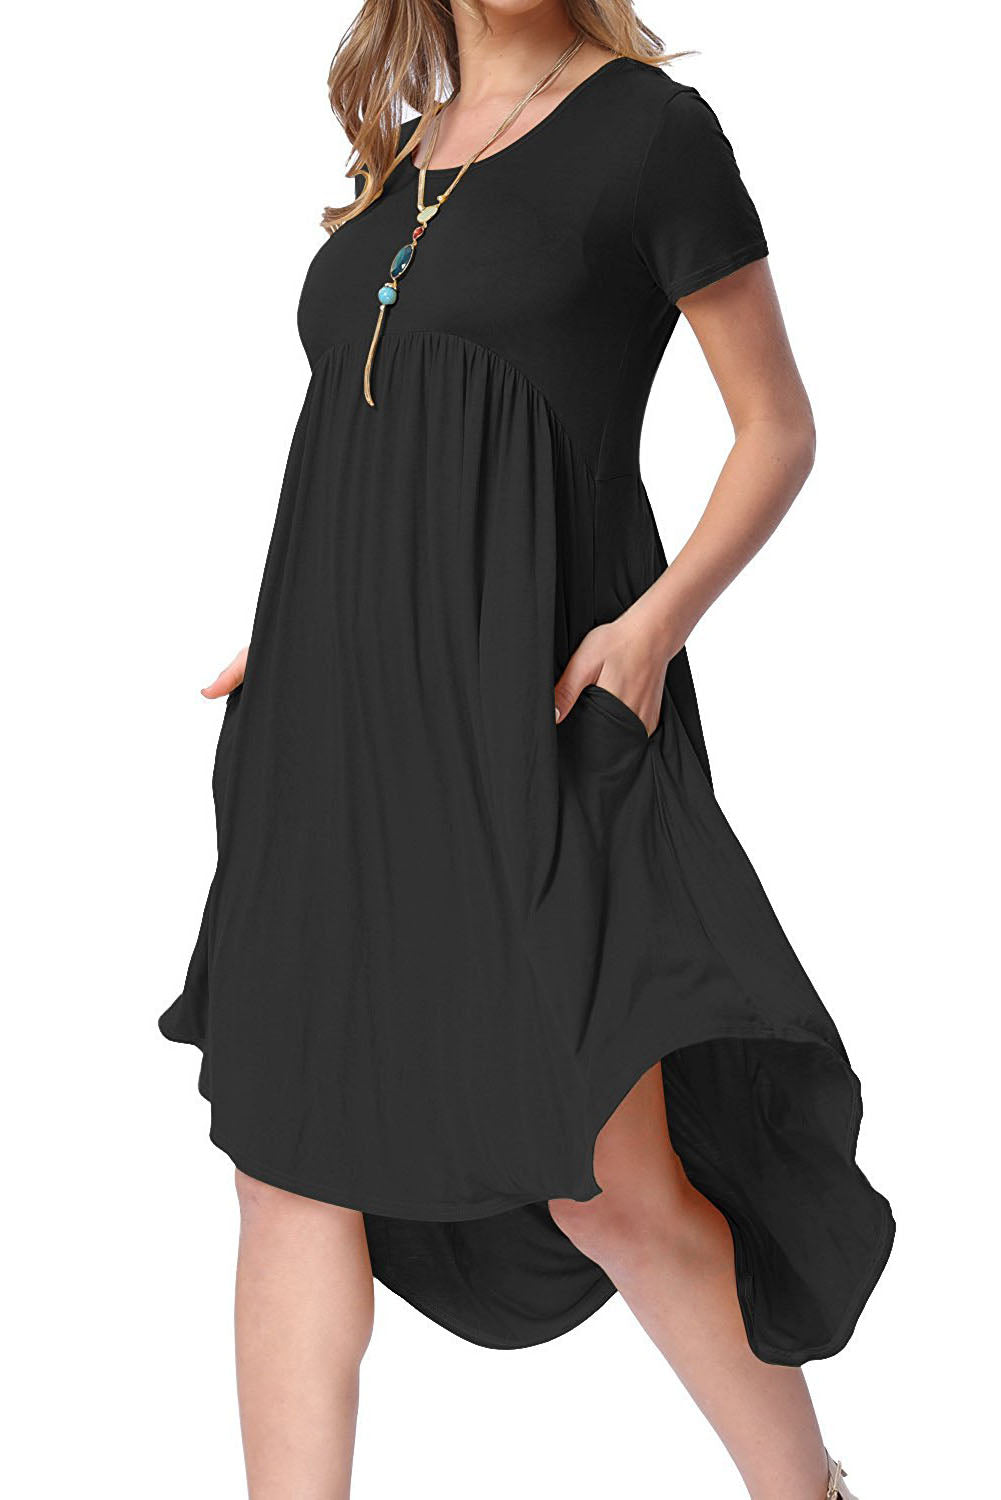 Short Sleeve High Low Pleated Casual Spring Dress